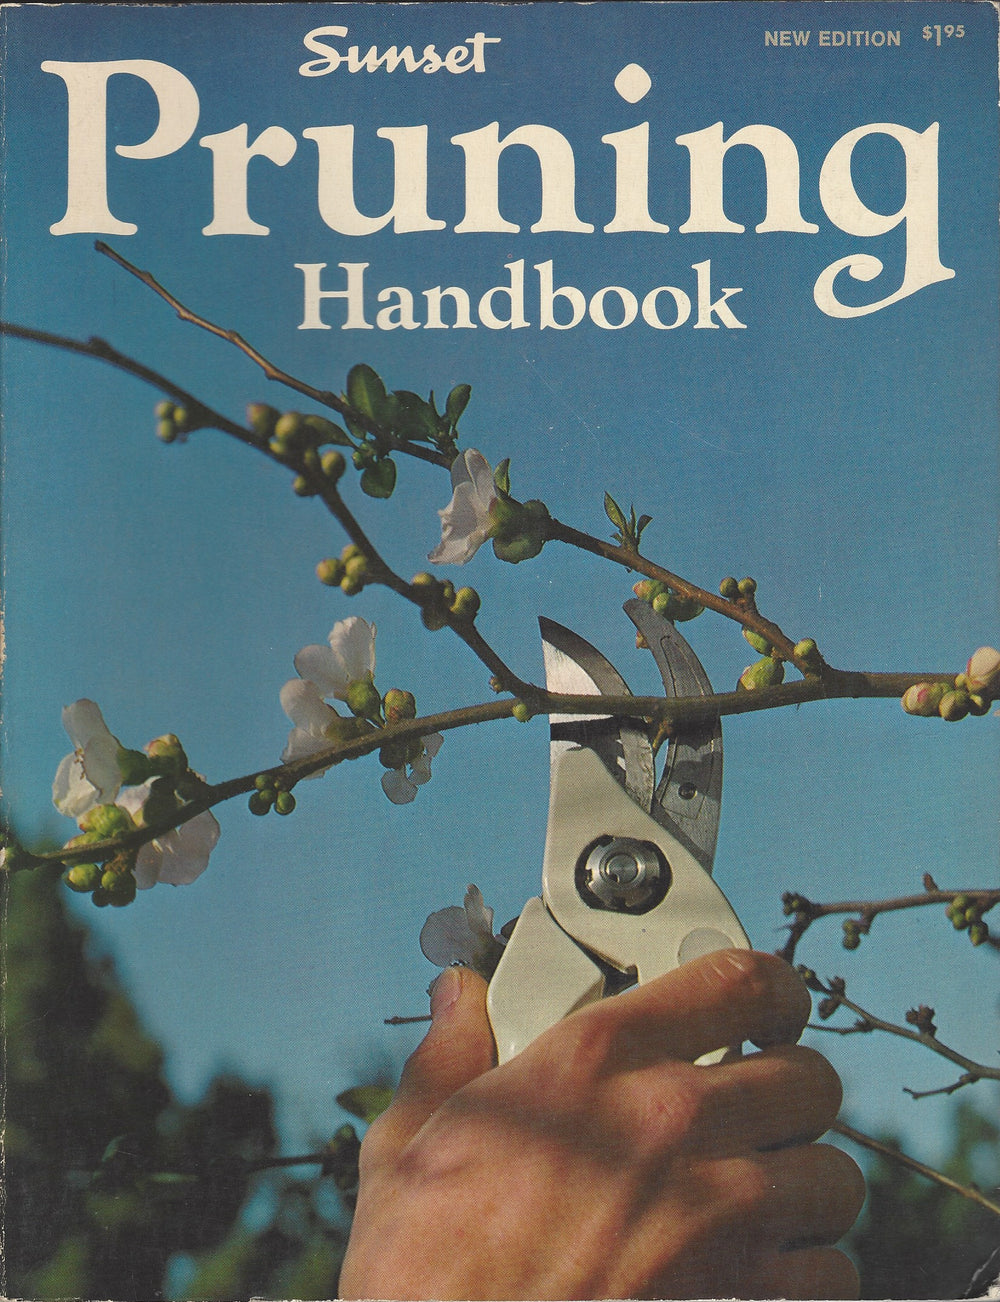 SUNSET-Pruning Handbook (Softcover) (1973)